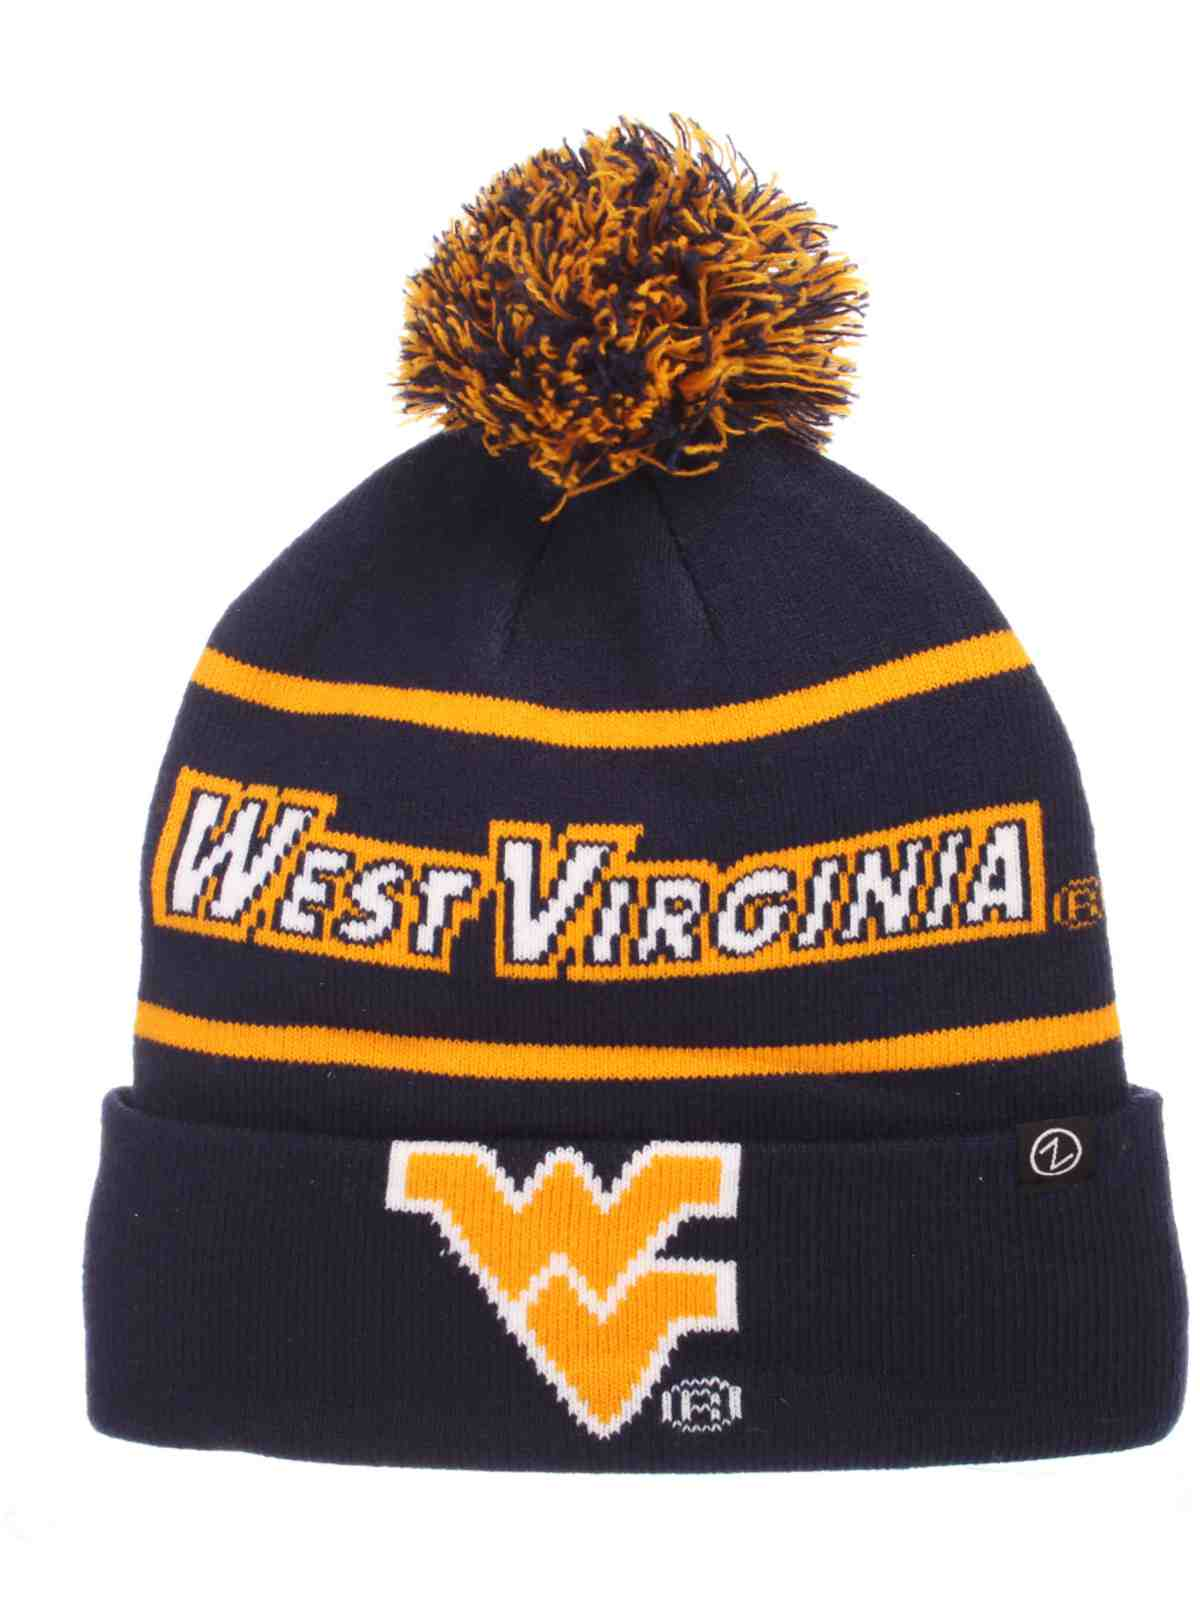 1c5684e857e West Virginia Mountaineers Zephyr Bandit Knit Cuffed Poof Ball Beanie Cap  Hat